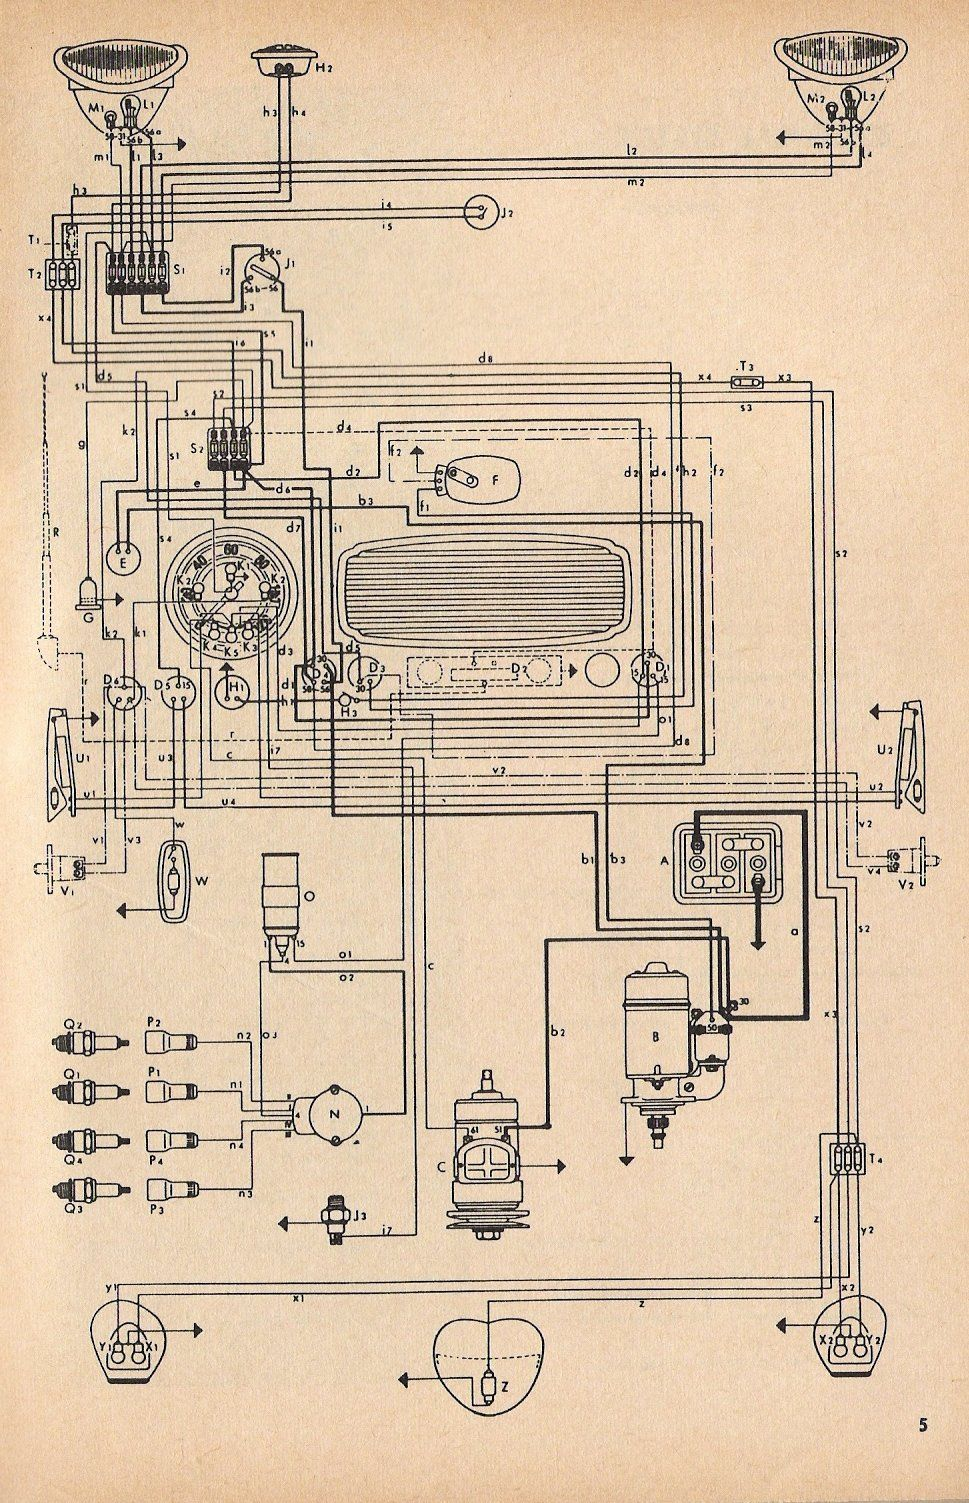 73aa9ad606b8bf00f62fd44f769ec35c electrical wiring diagrams beetle 1971 electrical wiring Volkswagen Type 2 Wiring Harness at alyssarenee.co